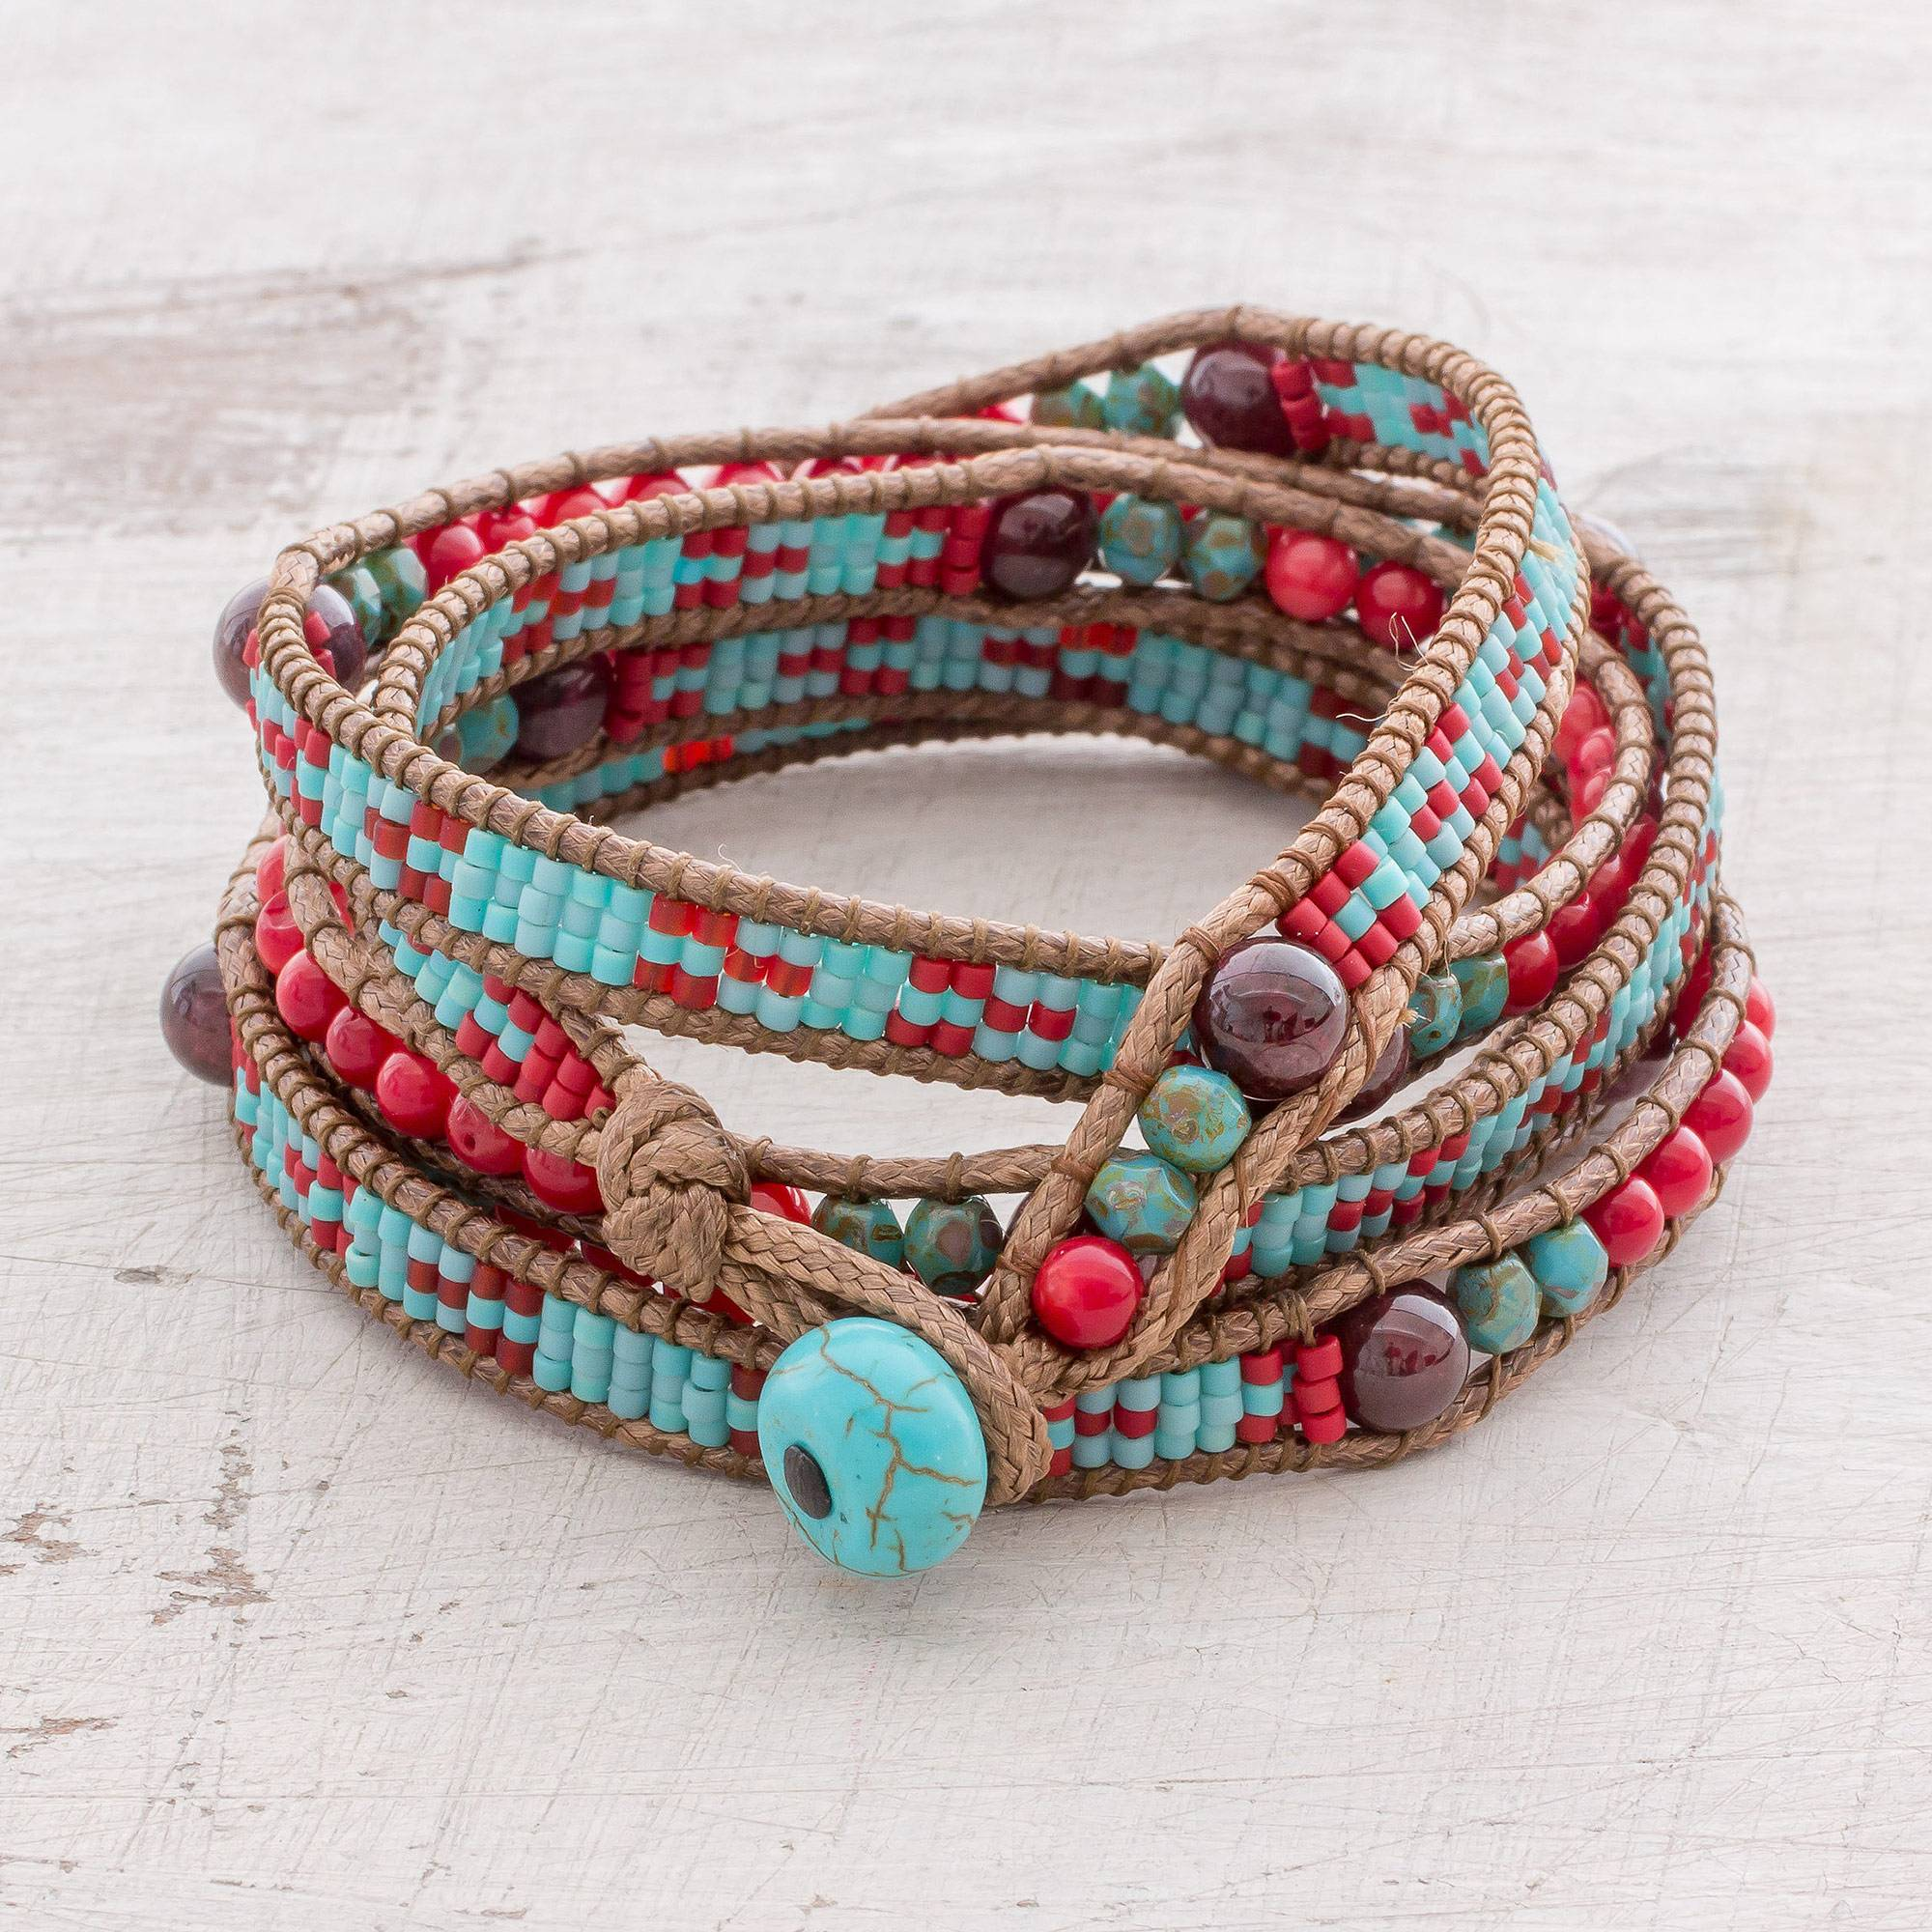 Garnet Beaded Wrap Bracelet In Red And Blue From Guatemala Dreams Of Color